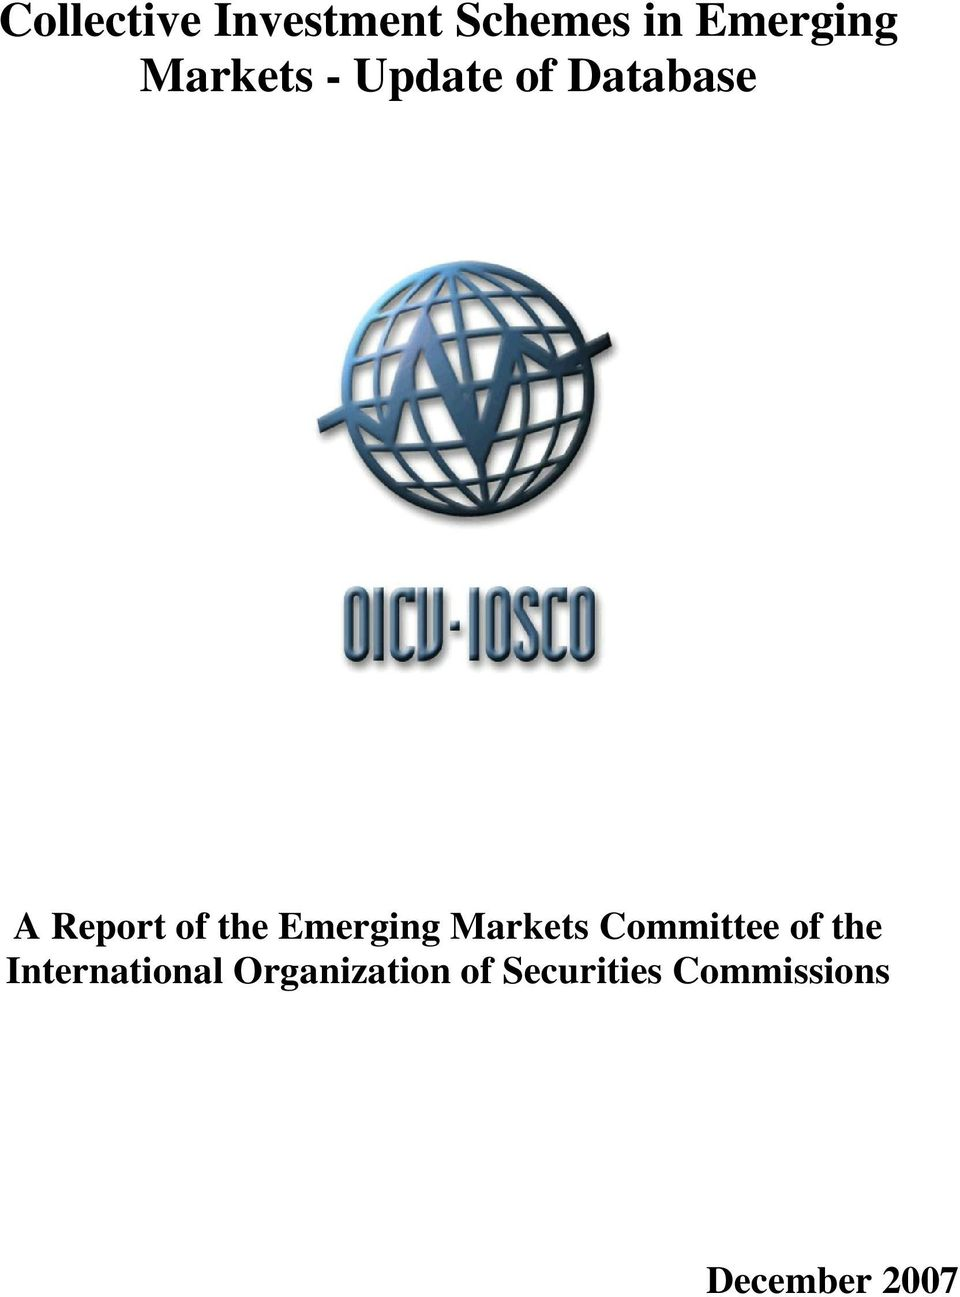 Emerging Markets Committee of the